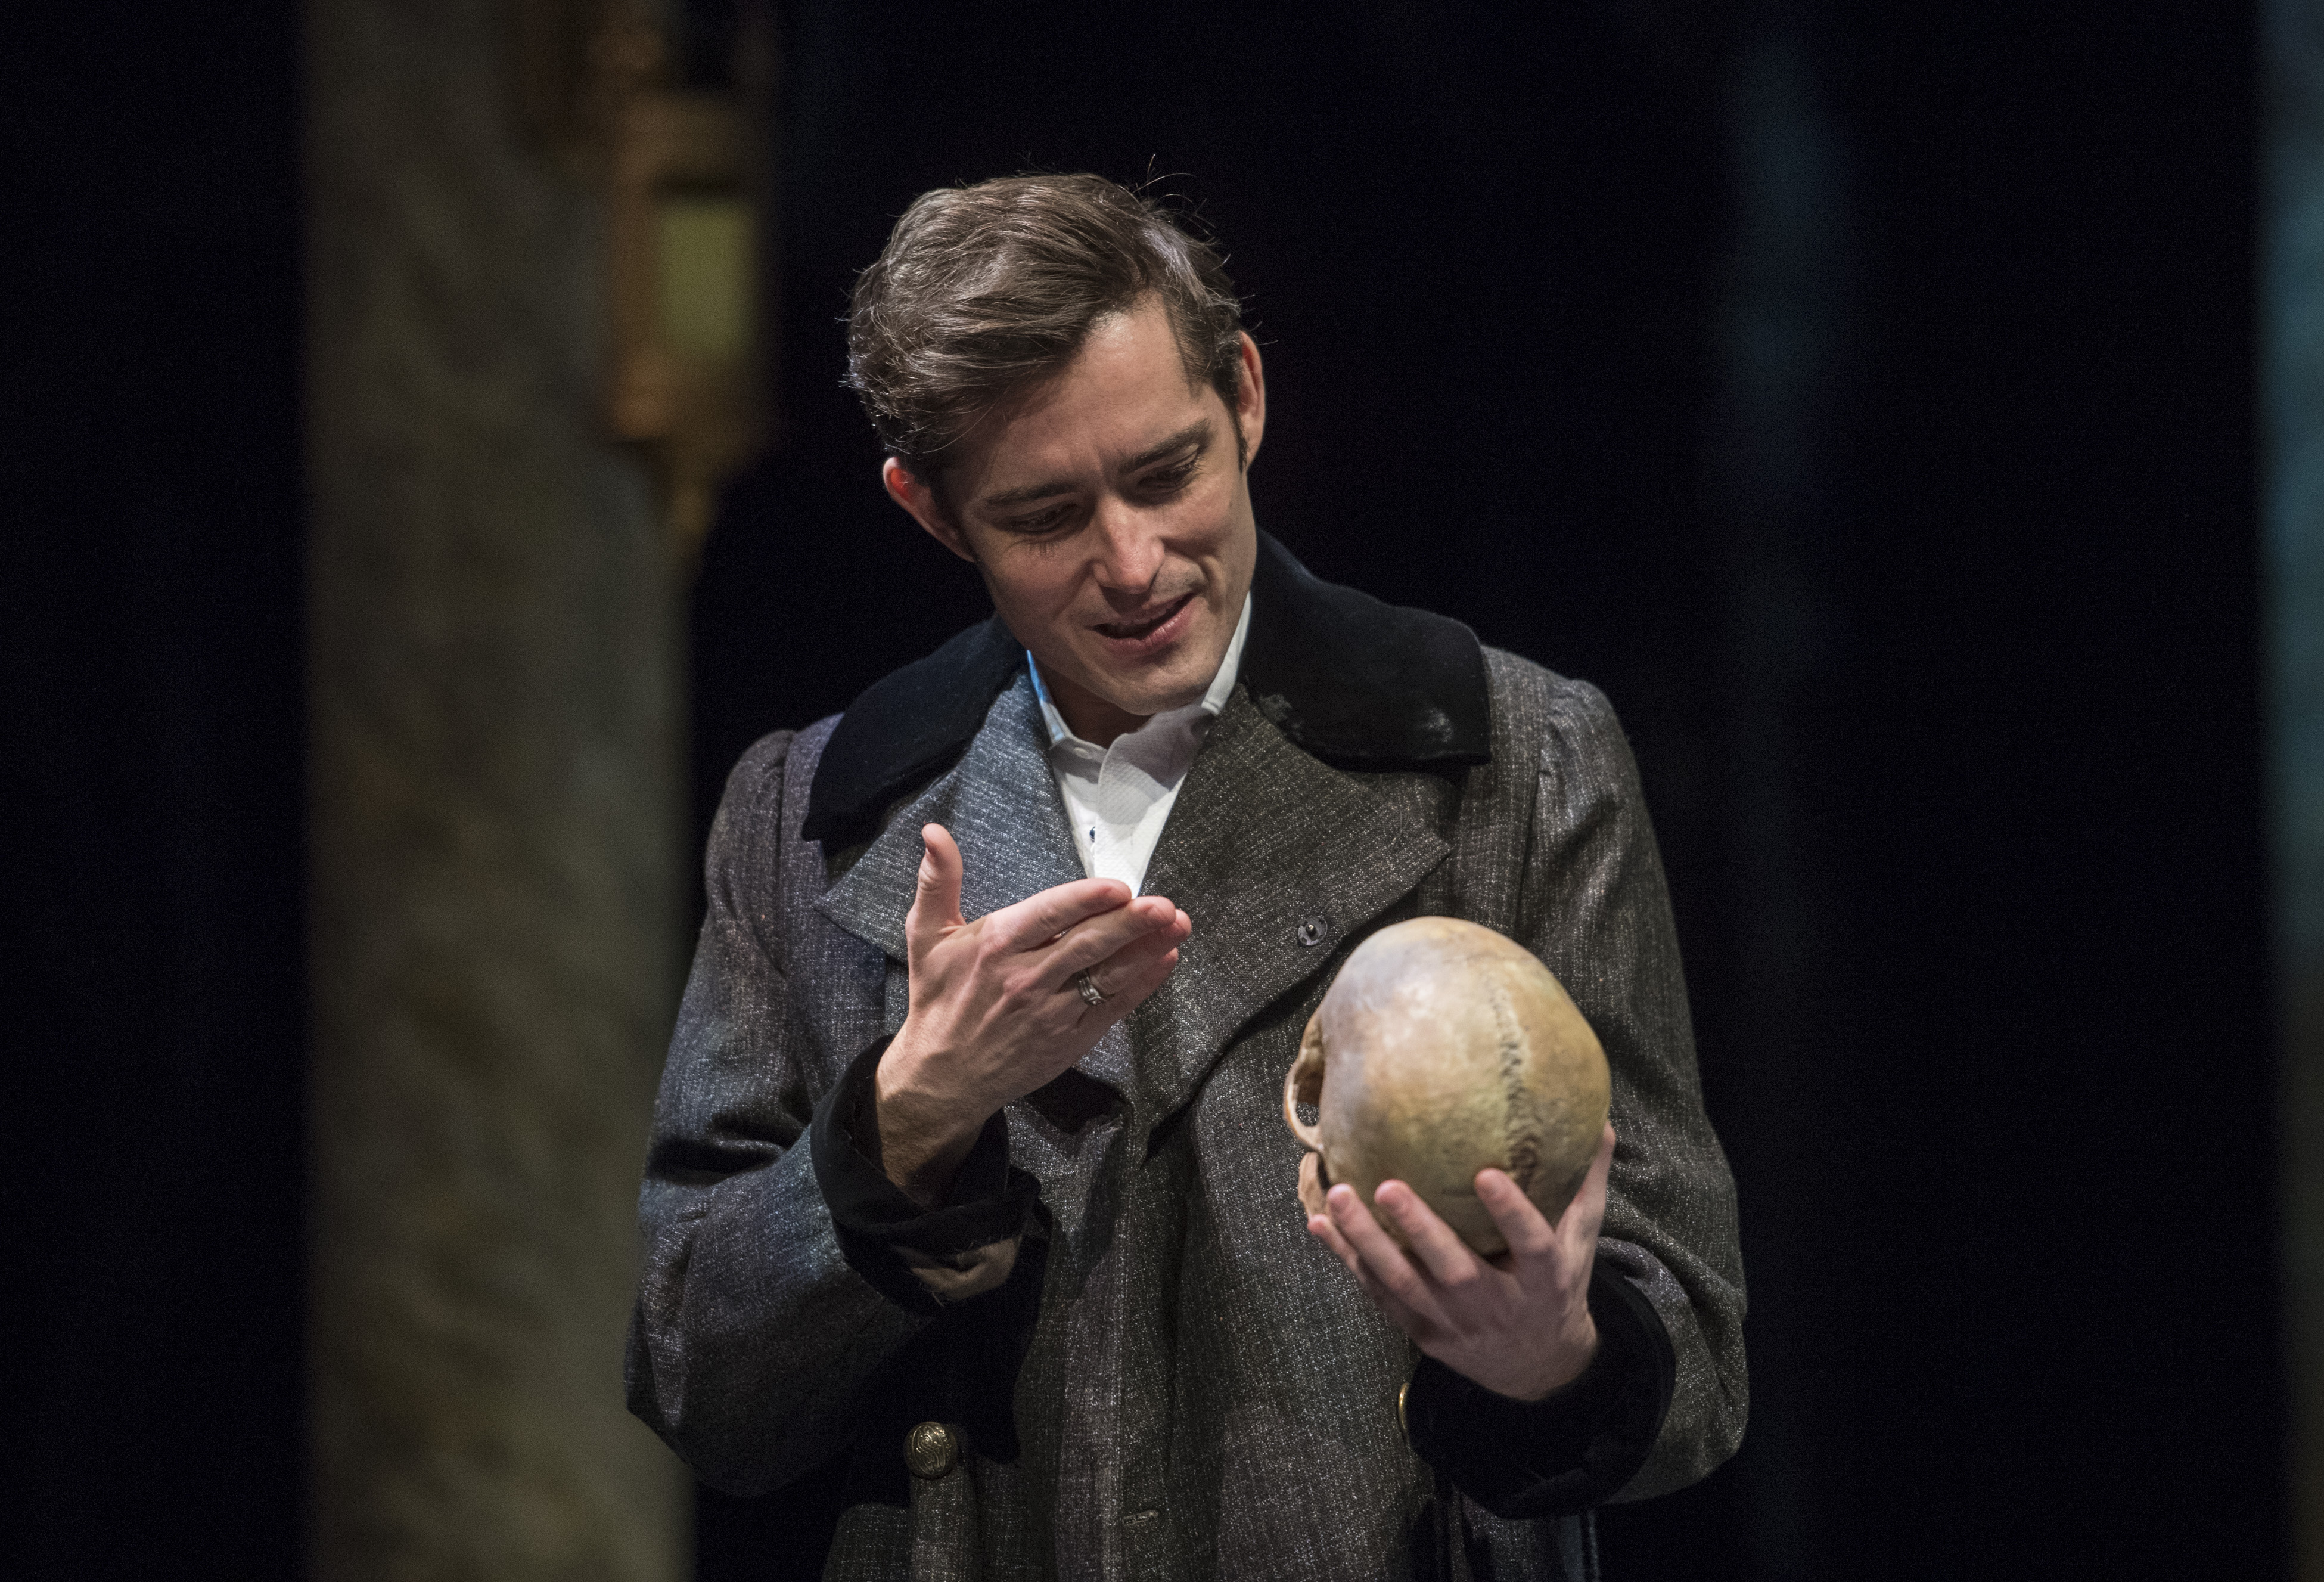 Hamlet (Matthew Amendt) finds the skull of Yorick, the jester who amused him when he was a child. Photo: Michael Henninger.